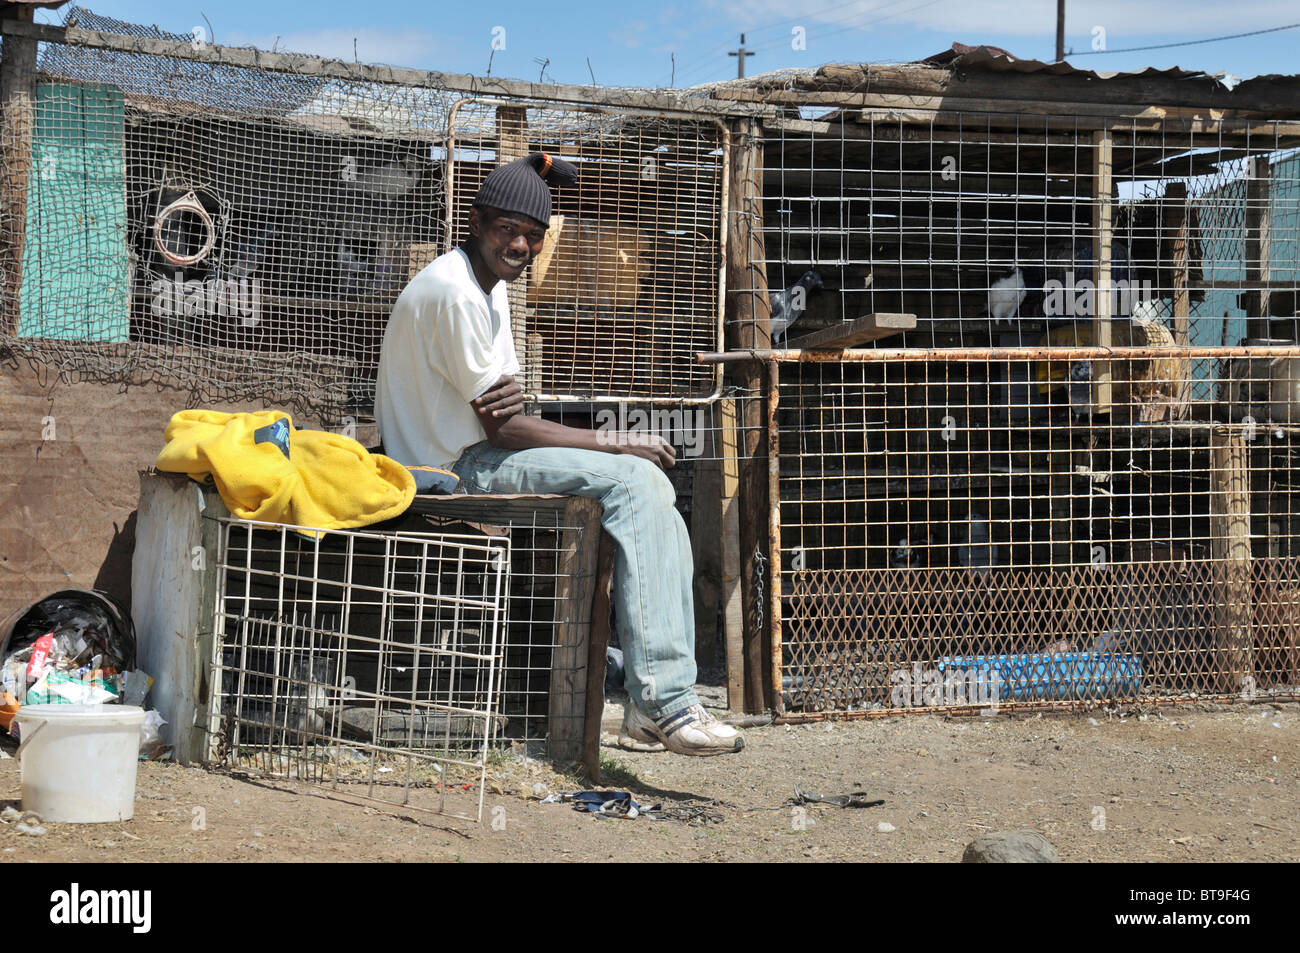 Slum, township, young man breeding pigeons in the backyard, Queenstown, Eastern Cape, South Africa, Africa - Stock Image